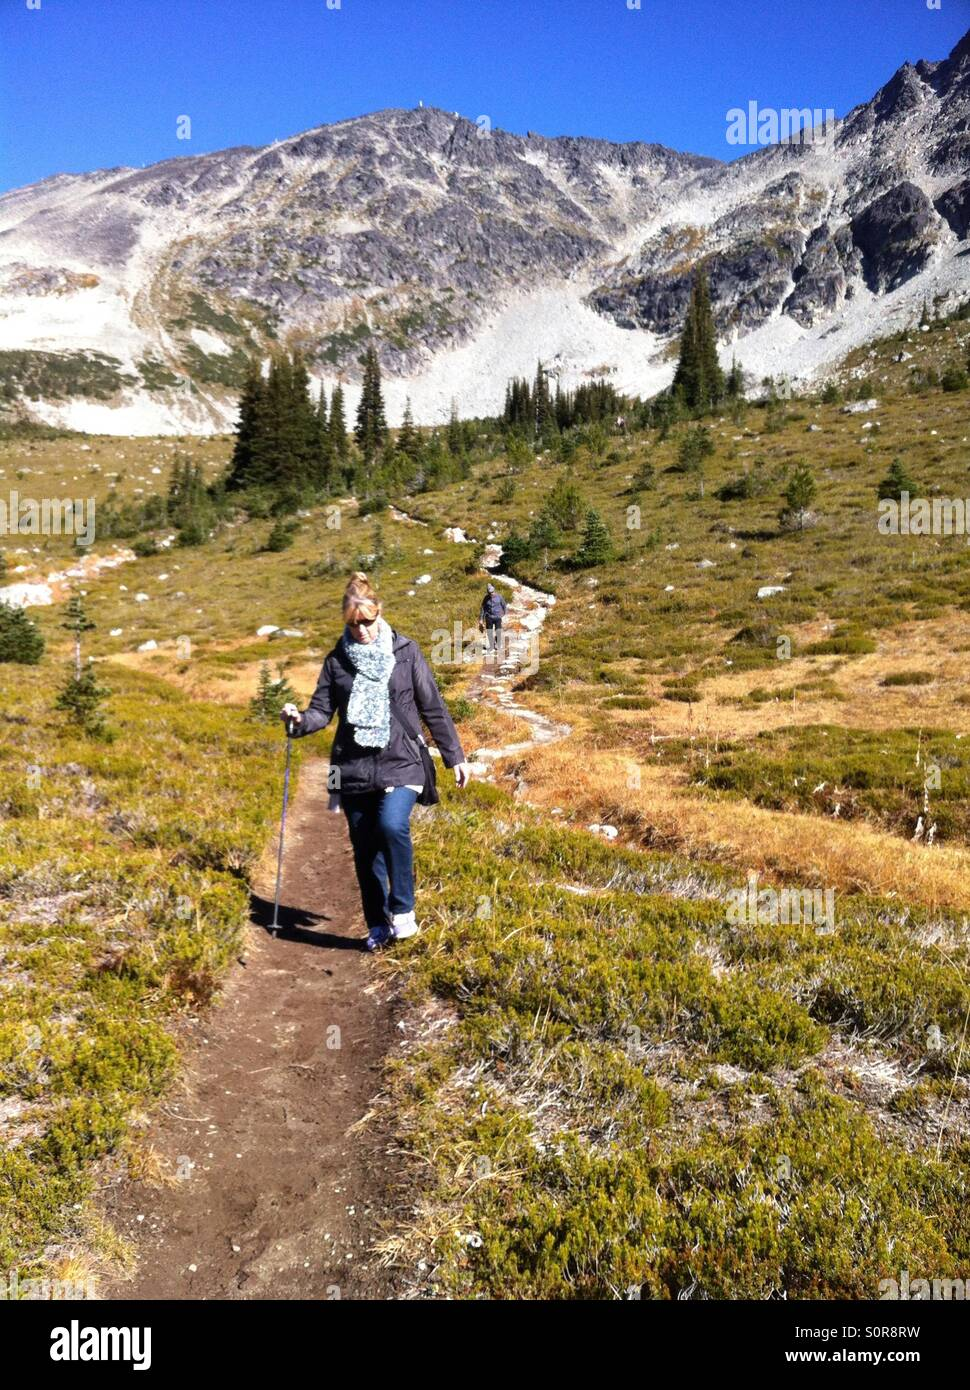 Hiking in the mountains of Whistler, Canada in Summer - Stock Image